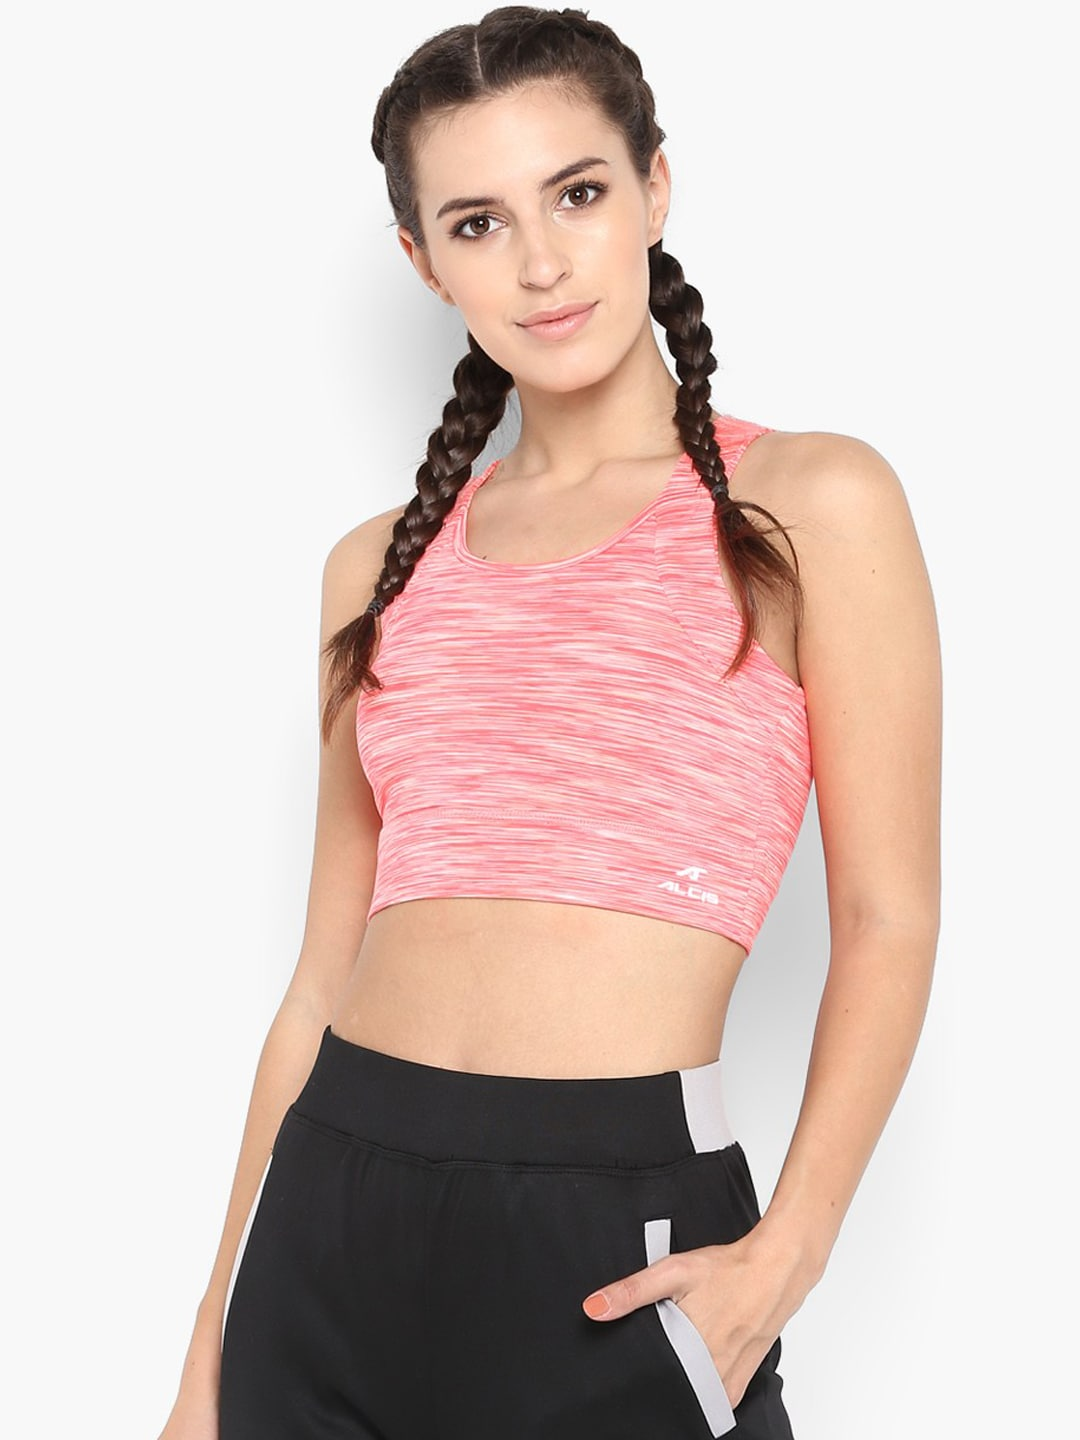 878c747bca0 Alcis Sports Apparel - Buy Alcis Sports Apparel online in India